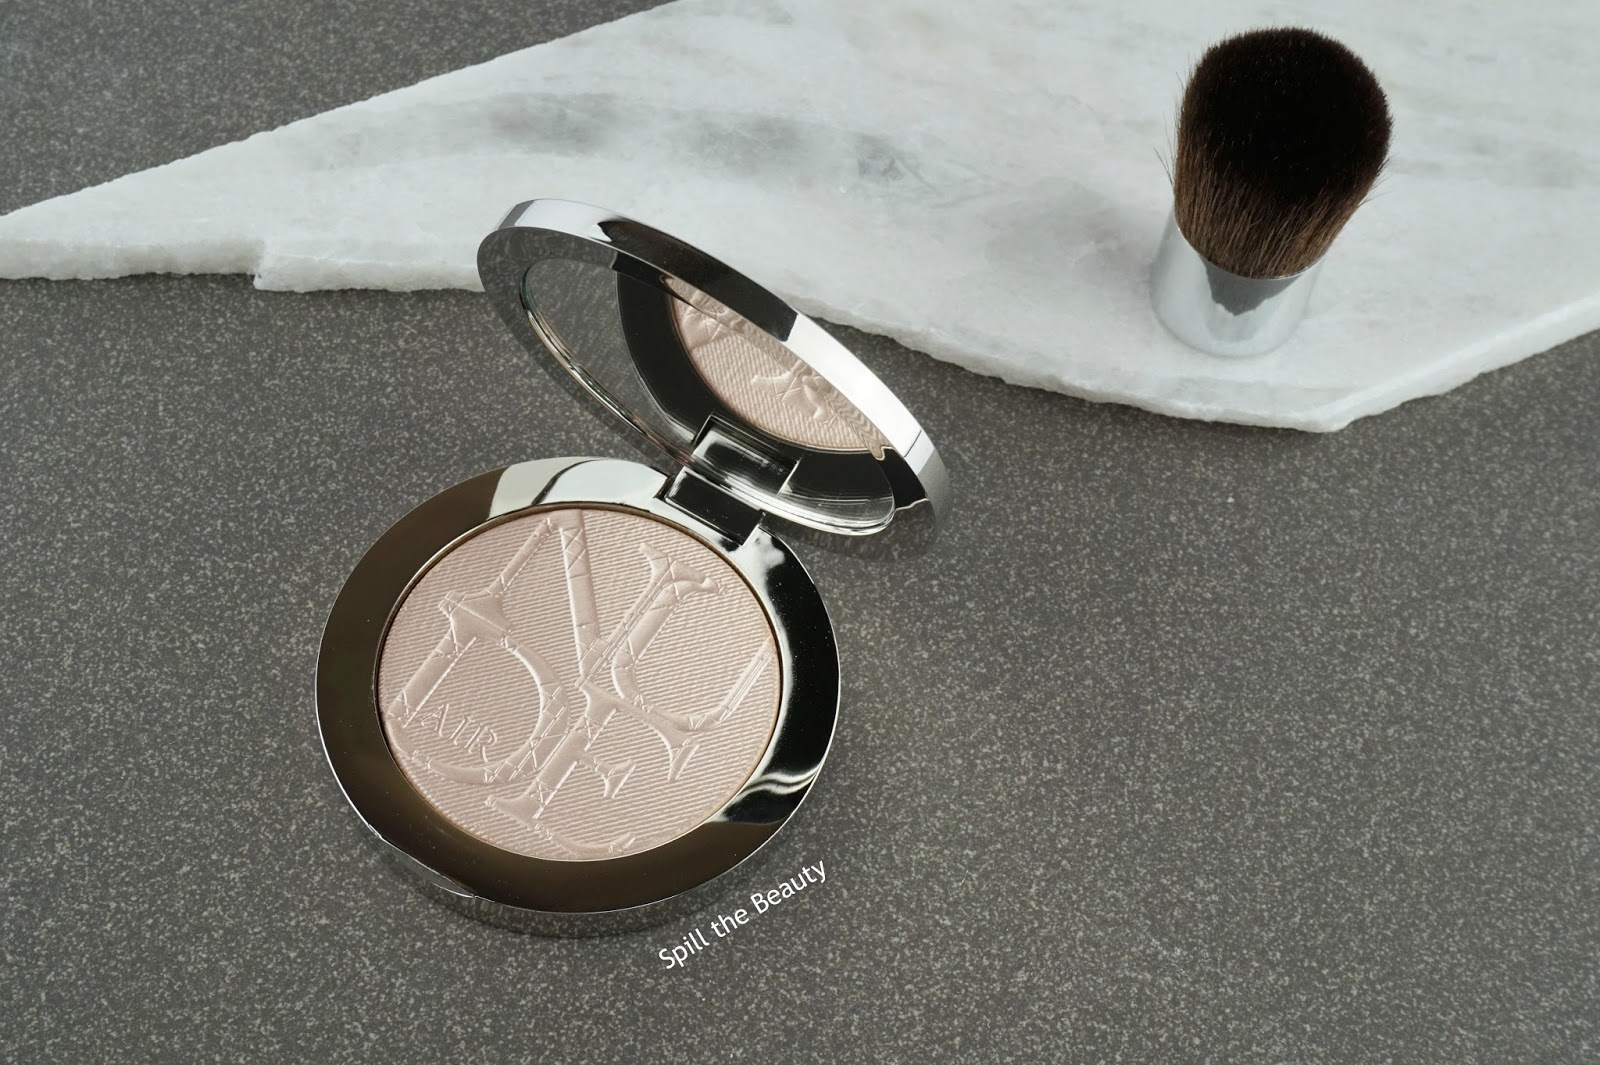 dior diorskin nude air luminizer shimmering sculpting powder 002 review swatches highlighter comparison